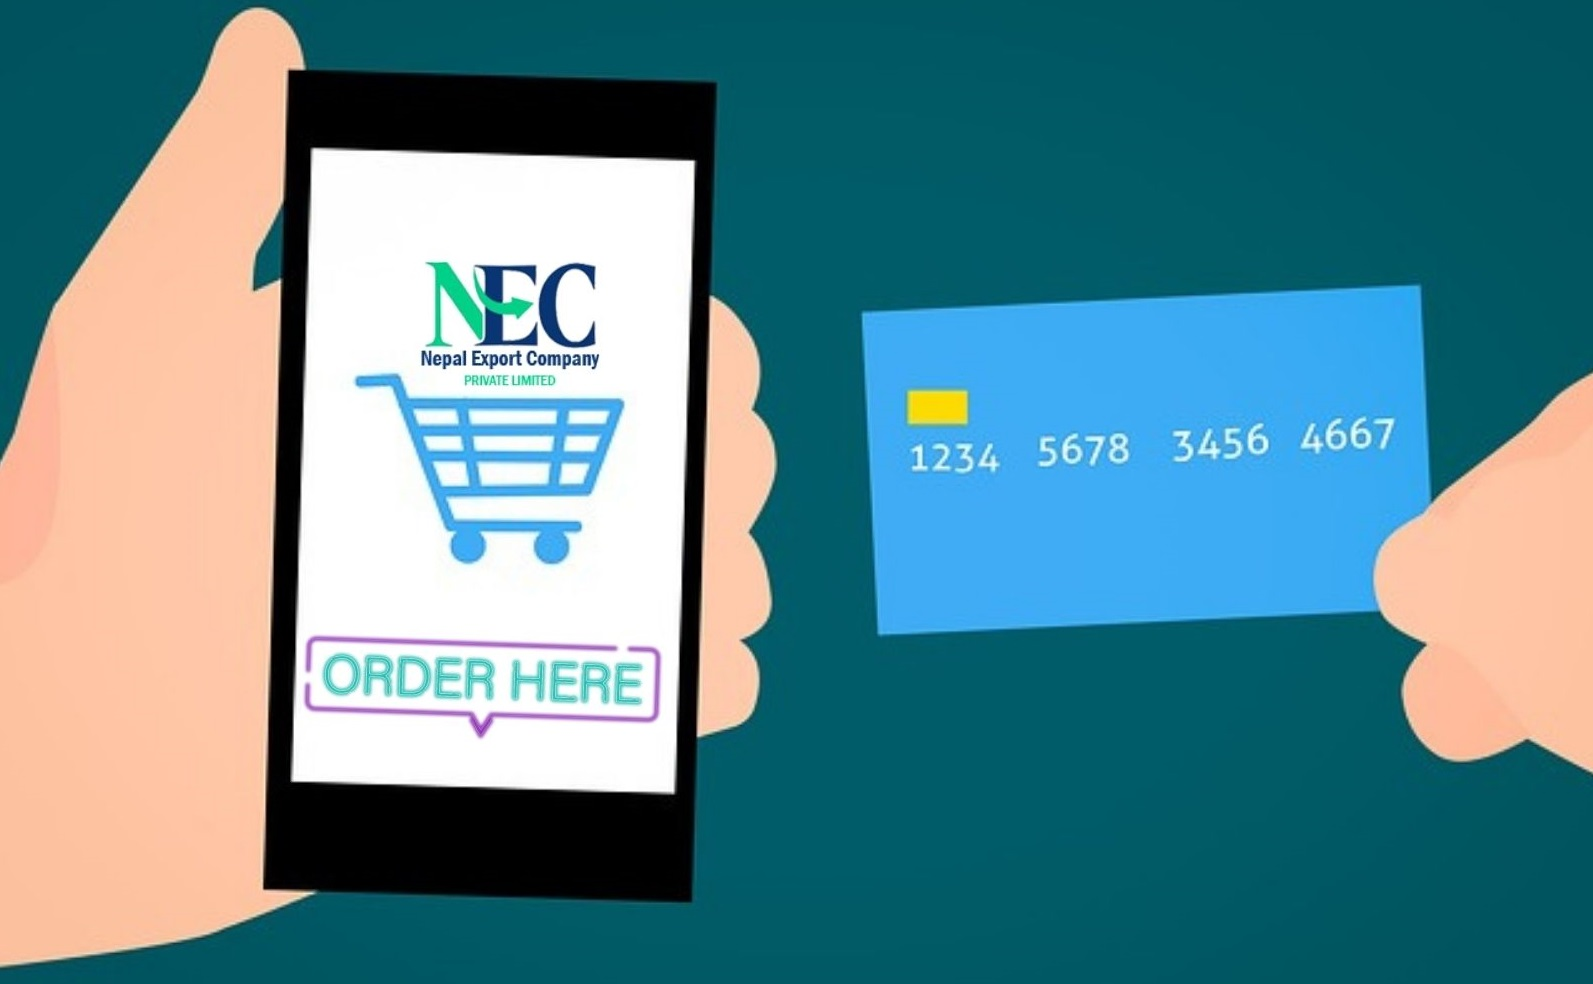 Order online with NEC